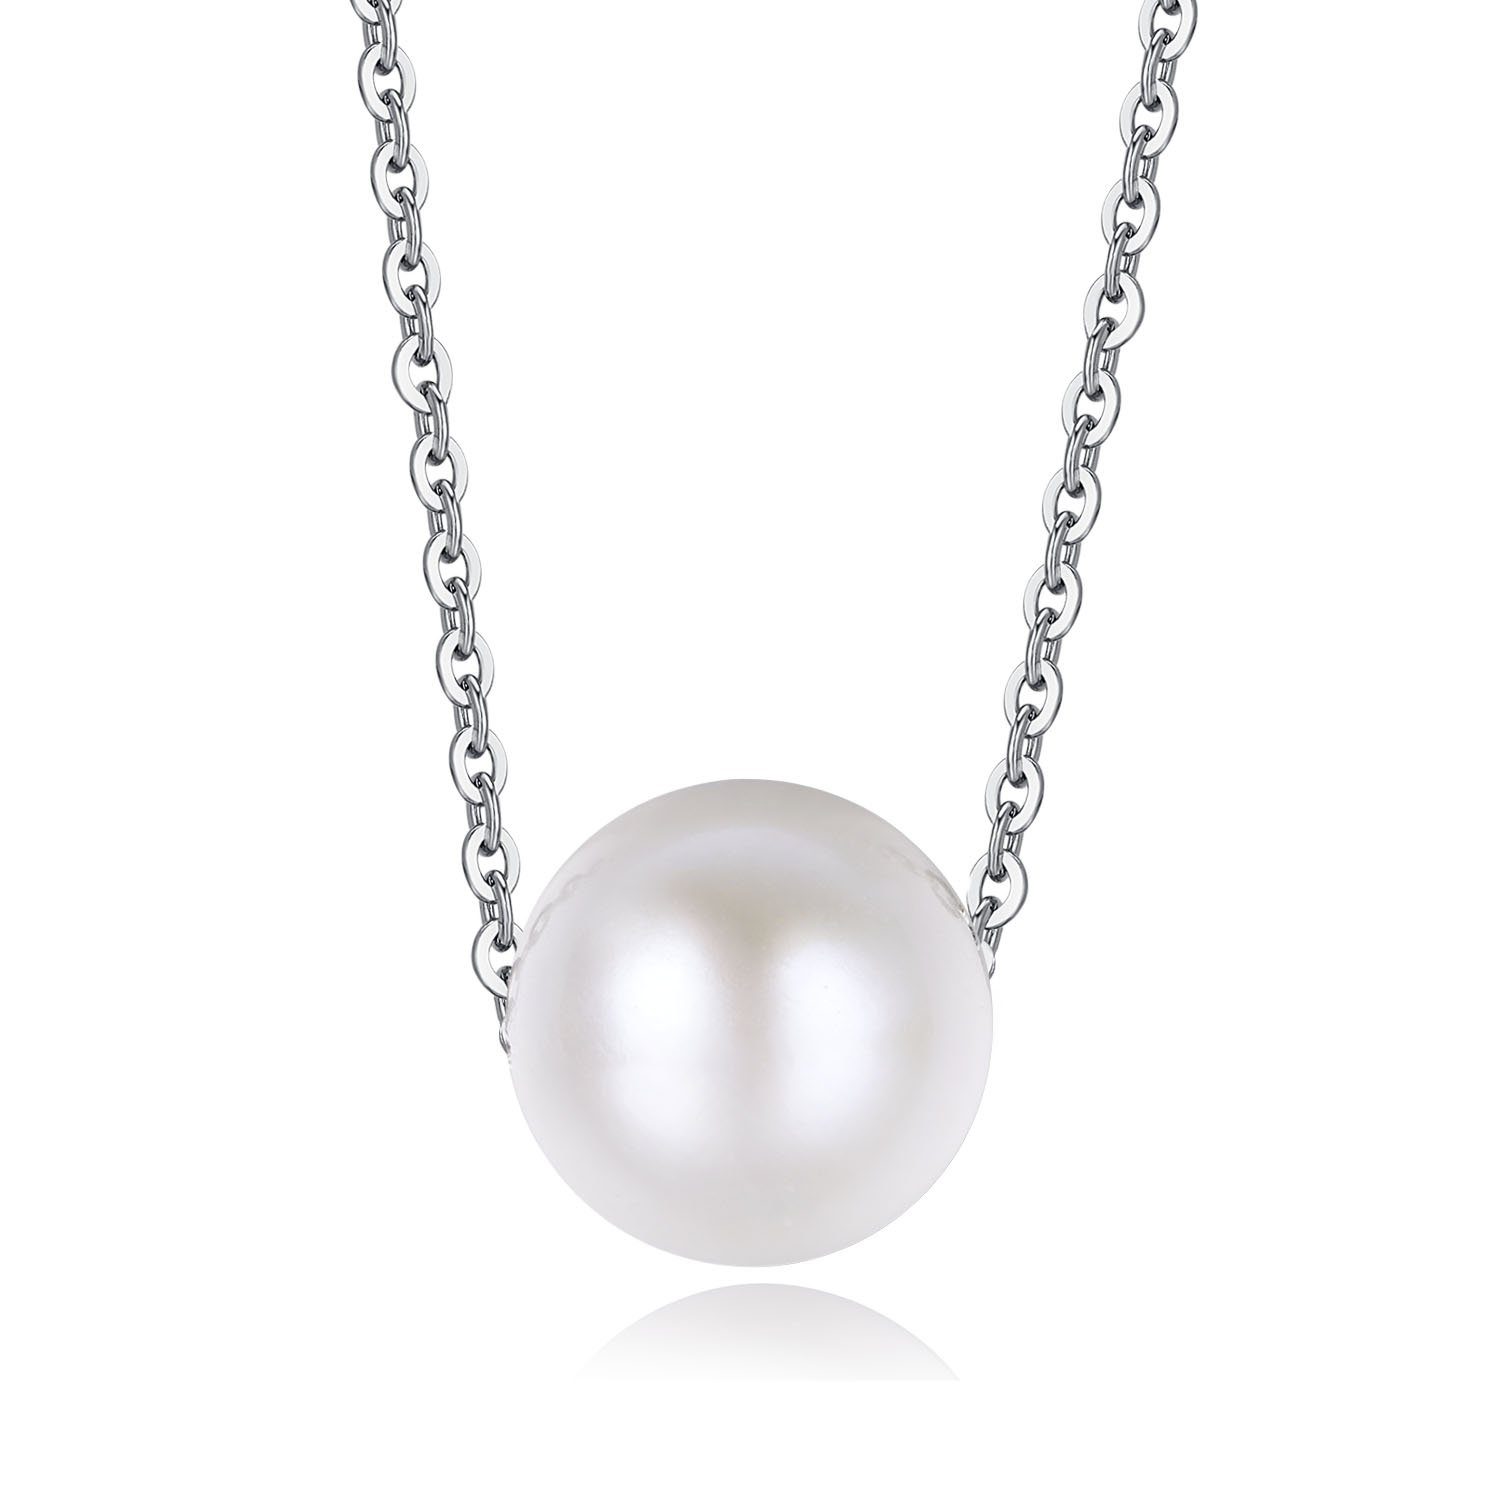 Precious Time Jewelry 9.5mm - 10.5mm White Freshwater Cultured Round Pearl 925 Sterling Silver Necklace with Certificate 16''+2''